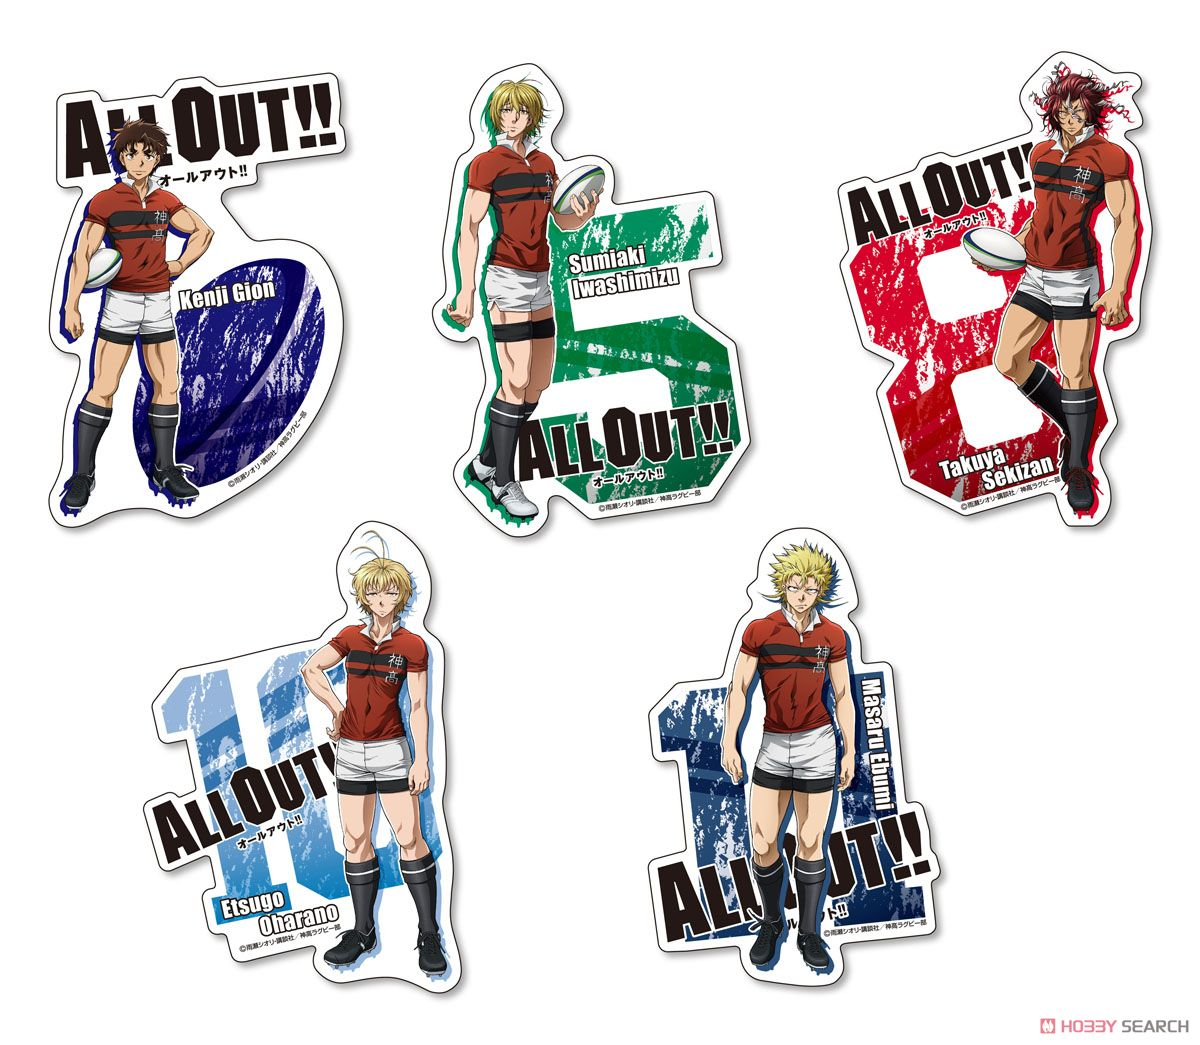 ALL OUT!! ダイカットポストカード 全5種類 (キャラクターグッズ)